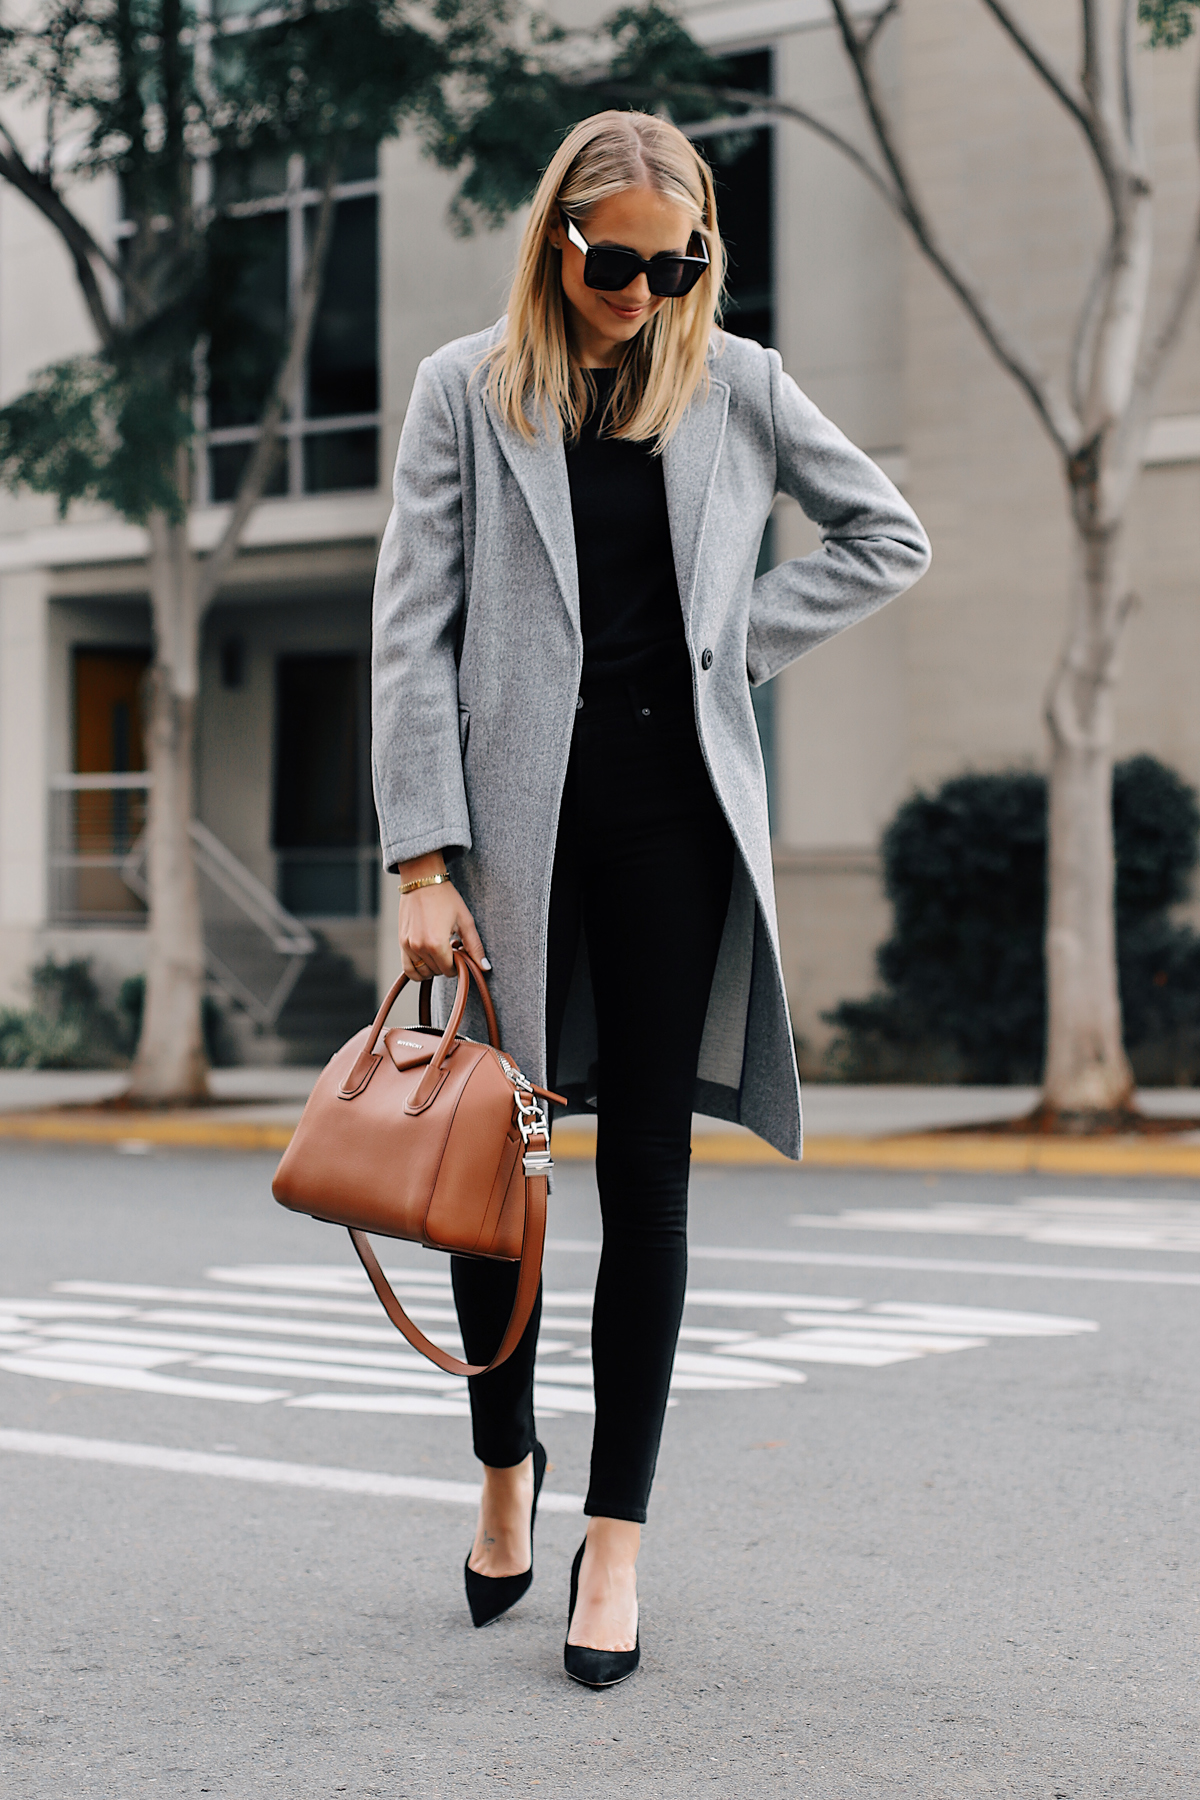 Blonde Woman Wearing Topshop Grey Wool Coat Black Sweater Black Skinny Jeans Black Pumps Givenchy Antigona Satchel Fashion Jackson San Diego Fashion Blogger Street Style